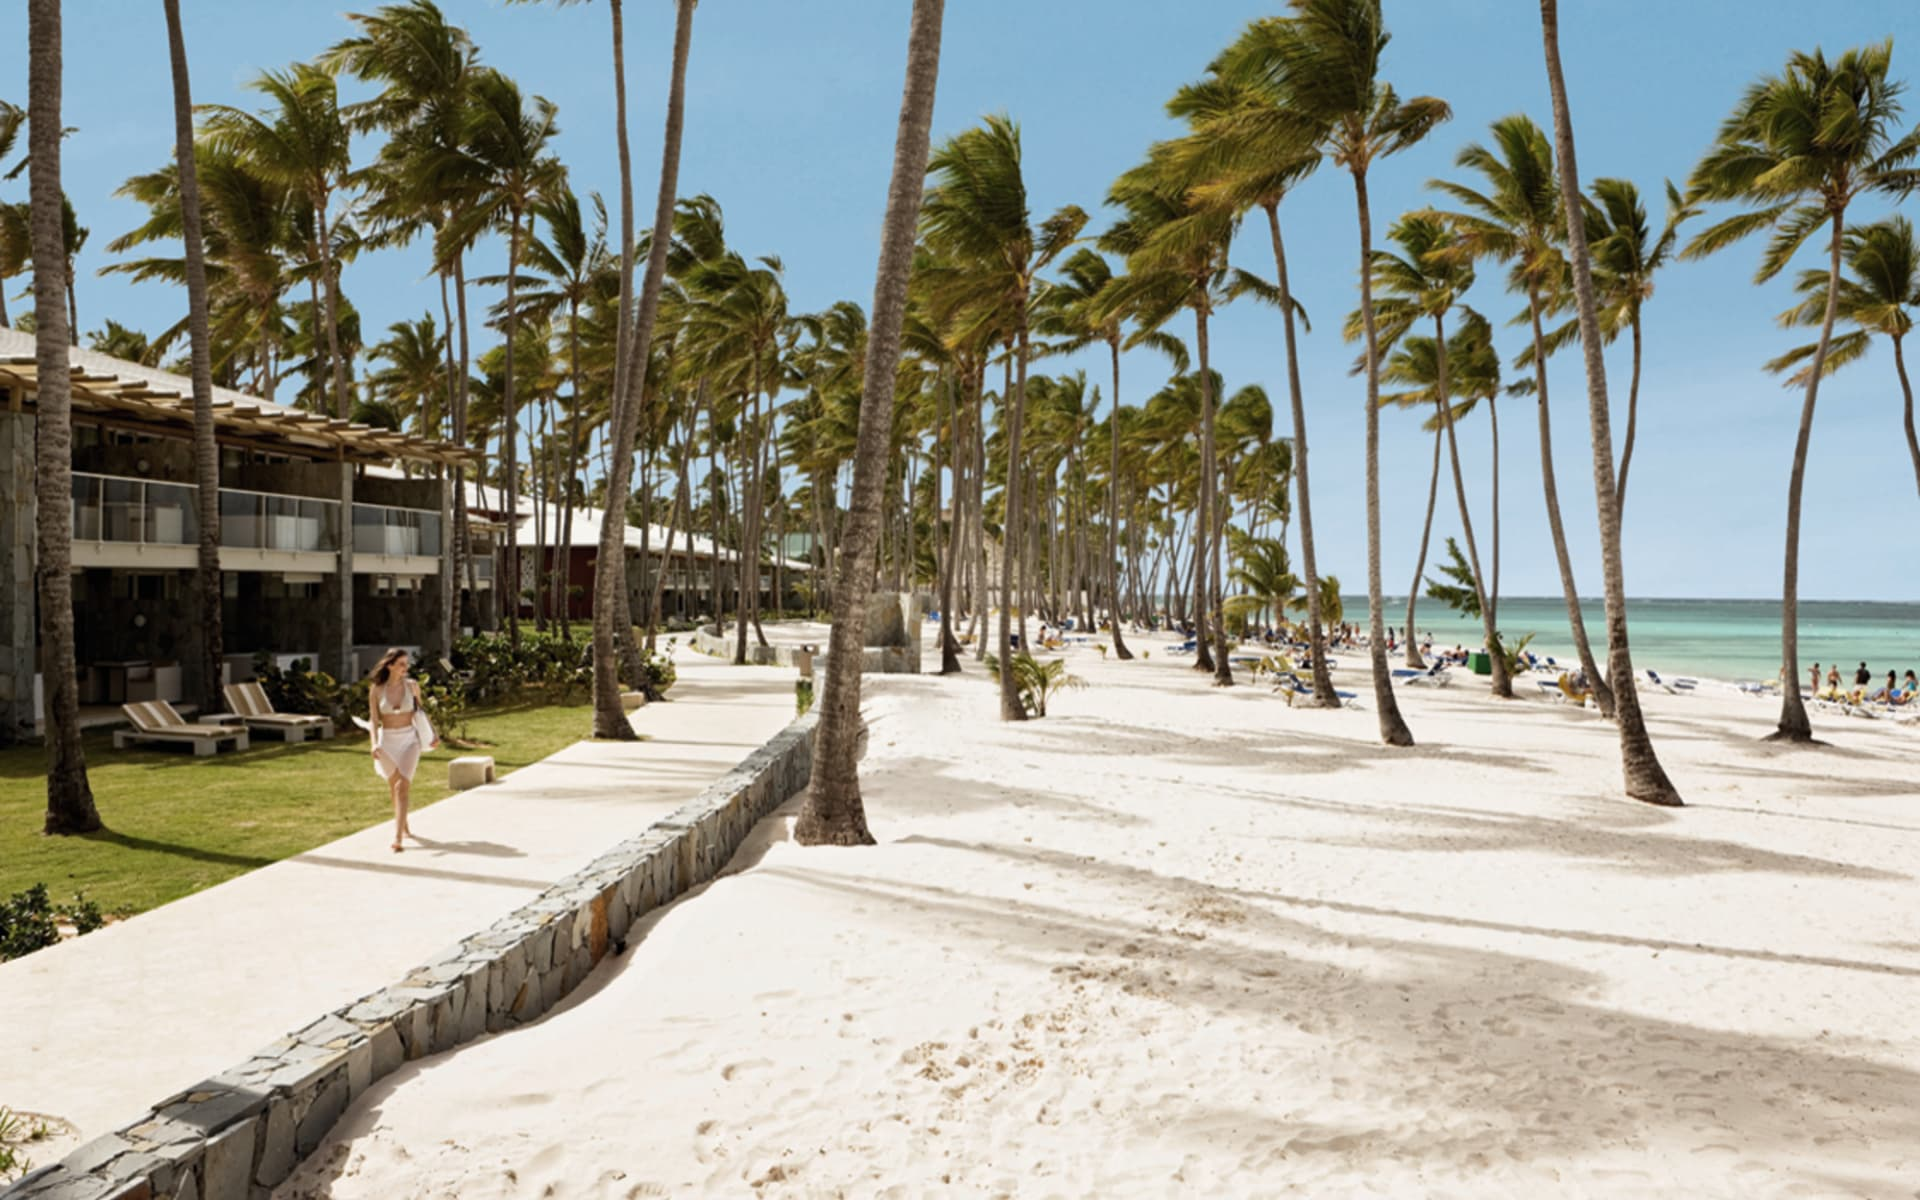 Barceló Bávaro Palace Deluxe in Punta Cana: natur barcelo bavaro palace deluxe strandpromenade